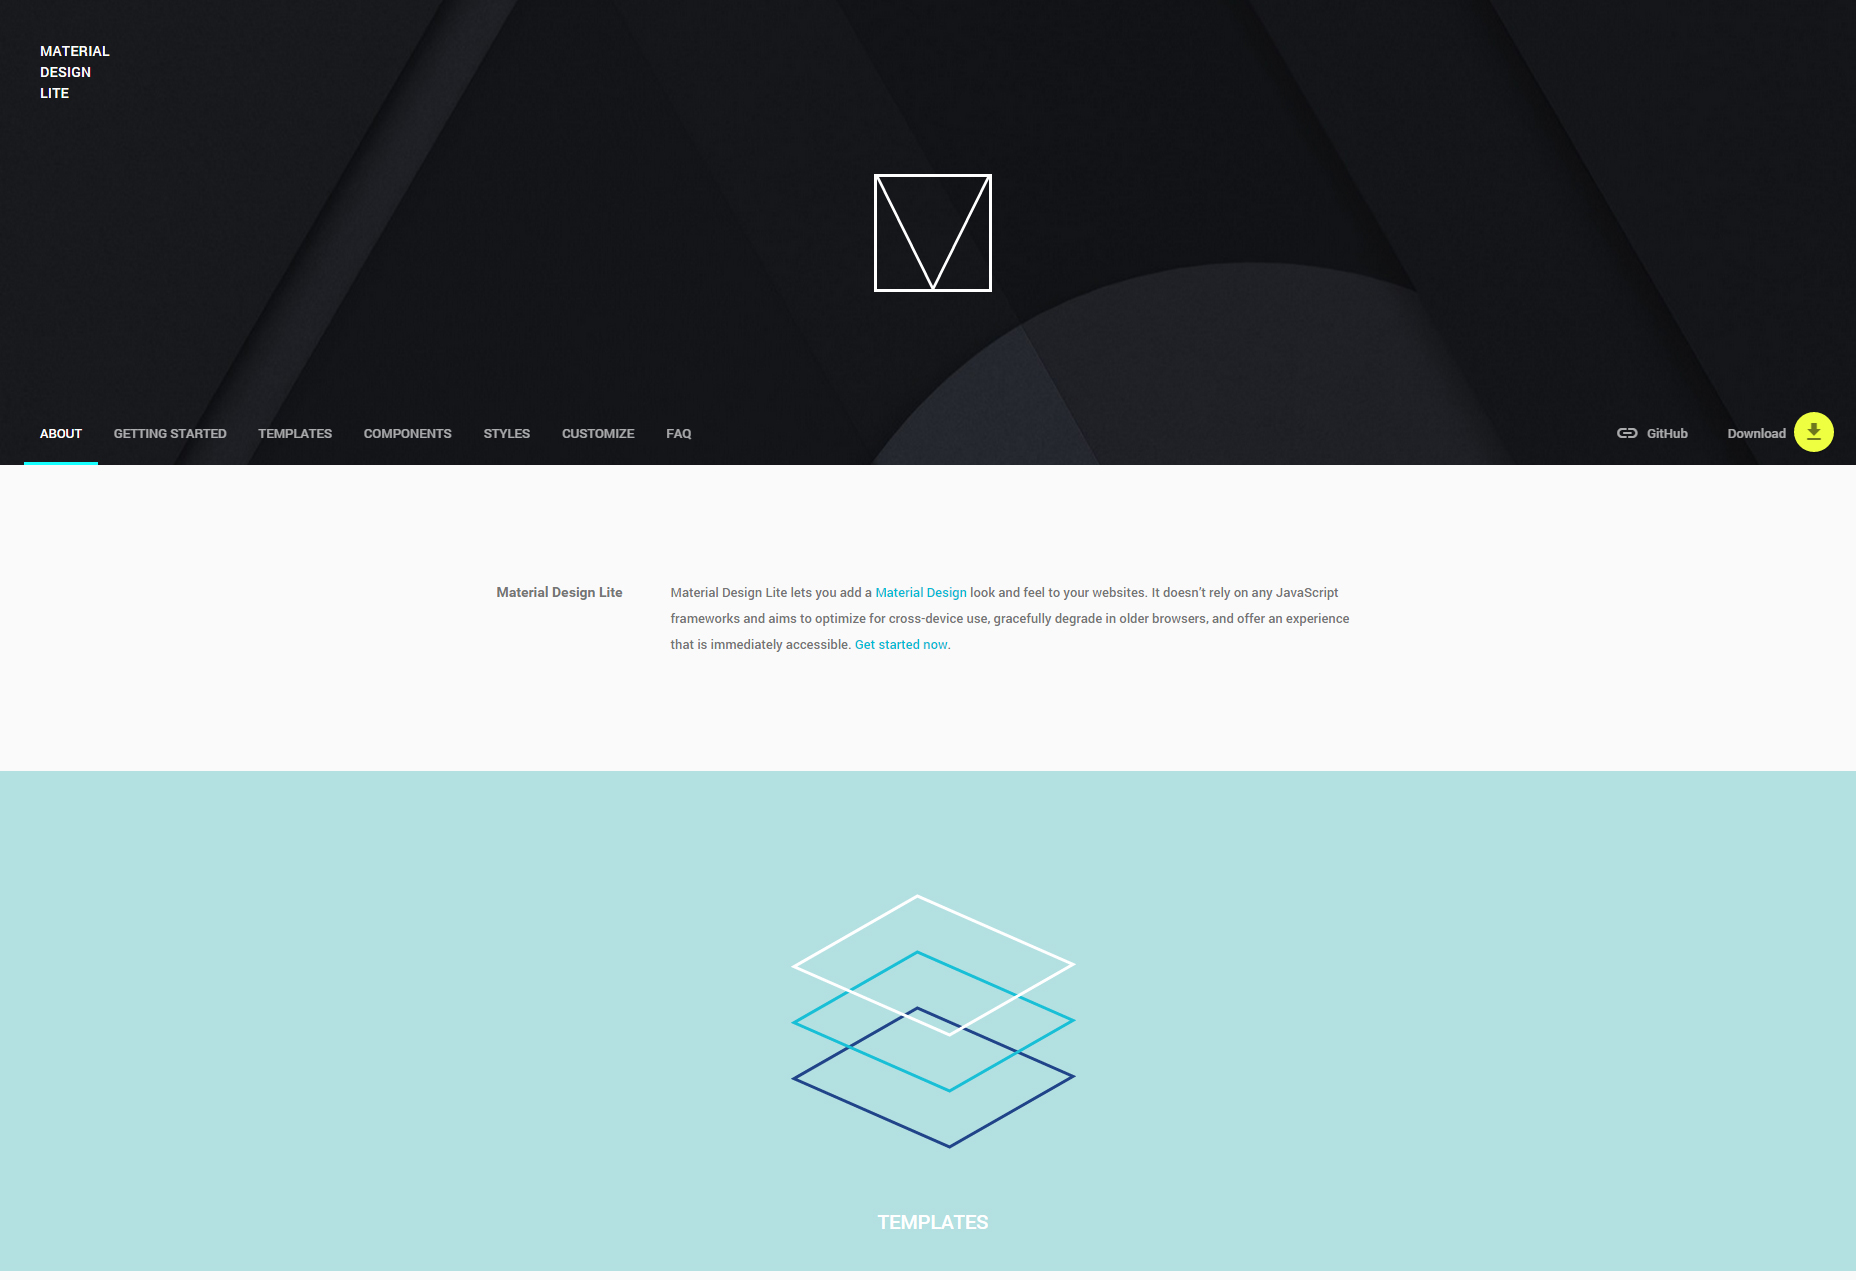 Material Design Lite Web Components Library